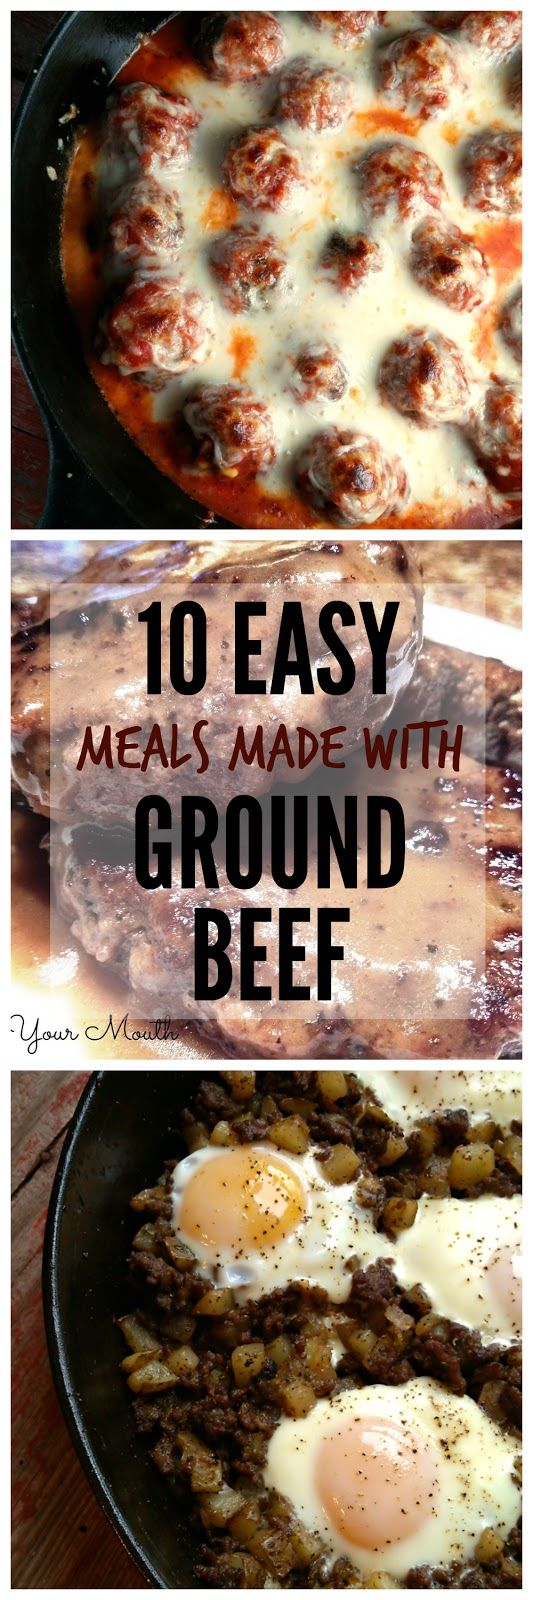 10 Easy Meals Made with Ground Beef like baked meatballs, hamburger steaks, salisbury steak tips, cabbage roll skillet, sliders and more!